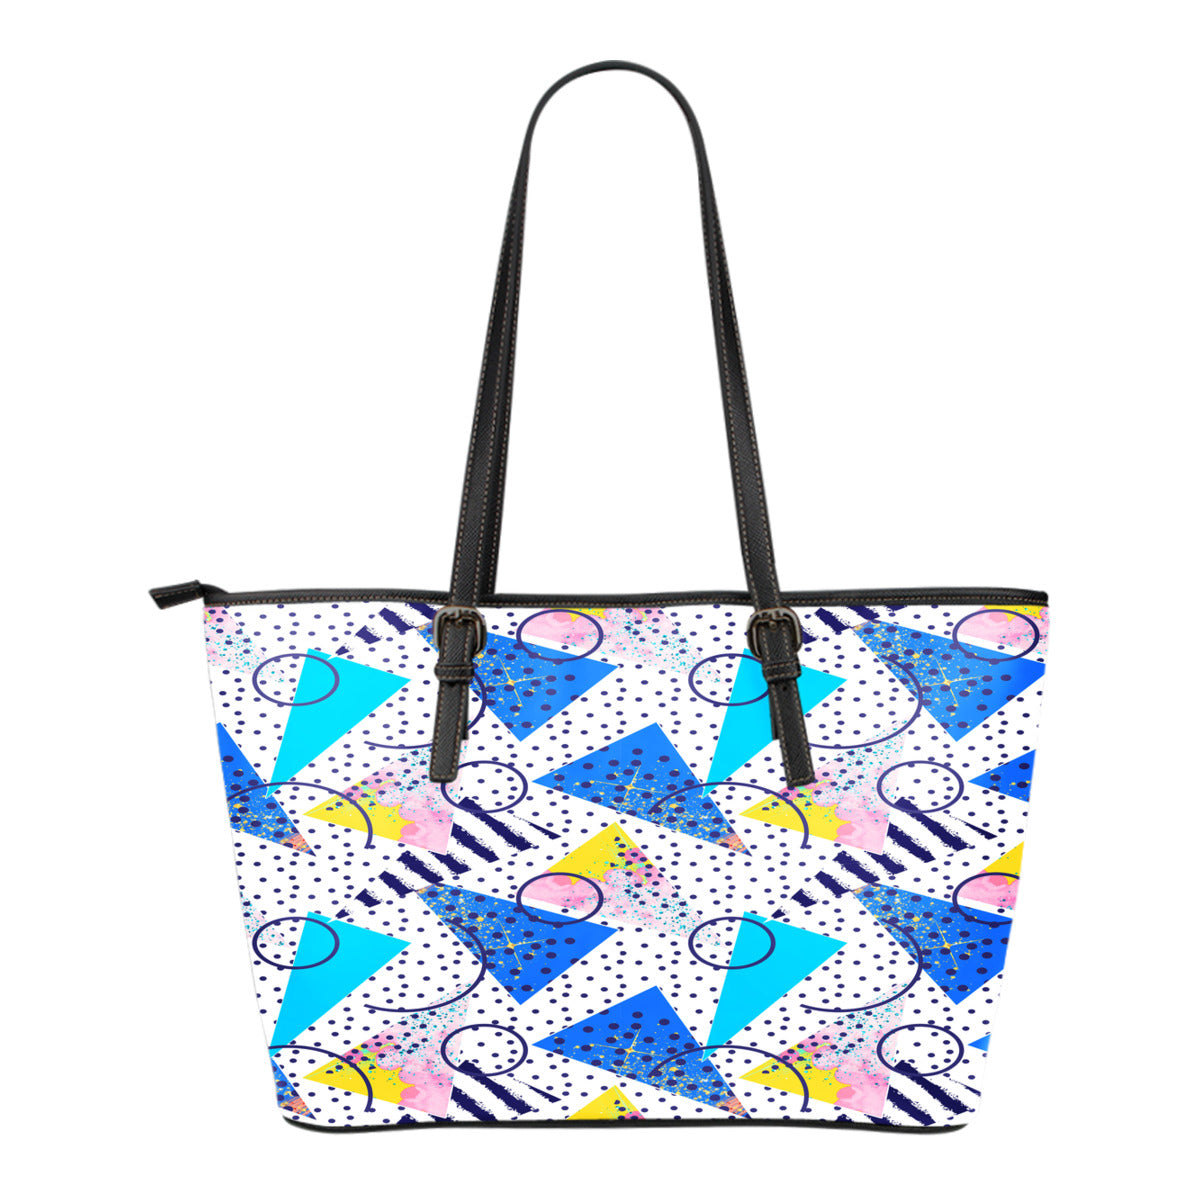 80s Fashion Themed Design C5 Women Small Leather Tote Bag